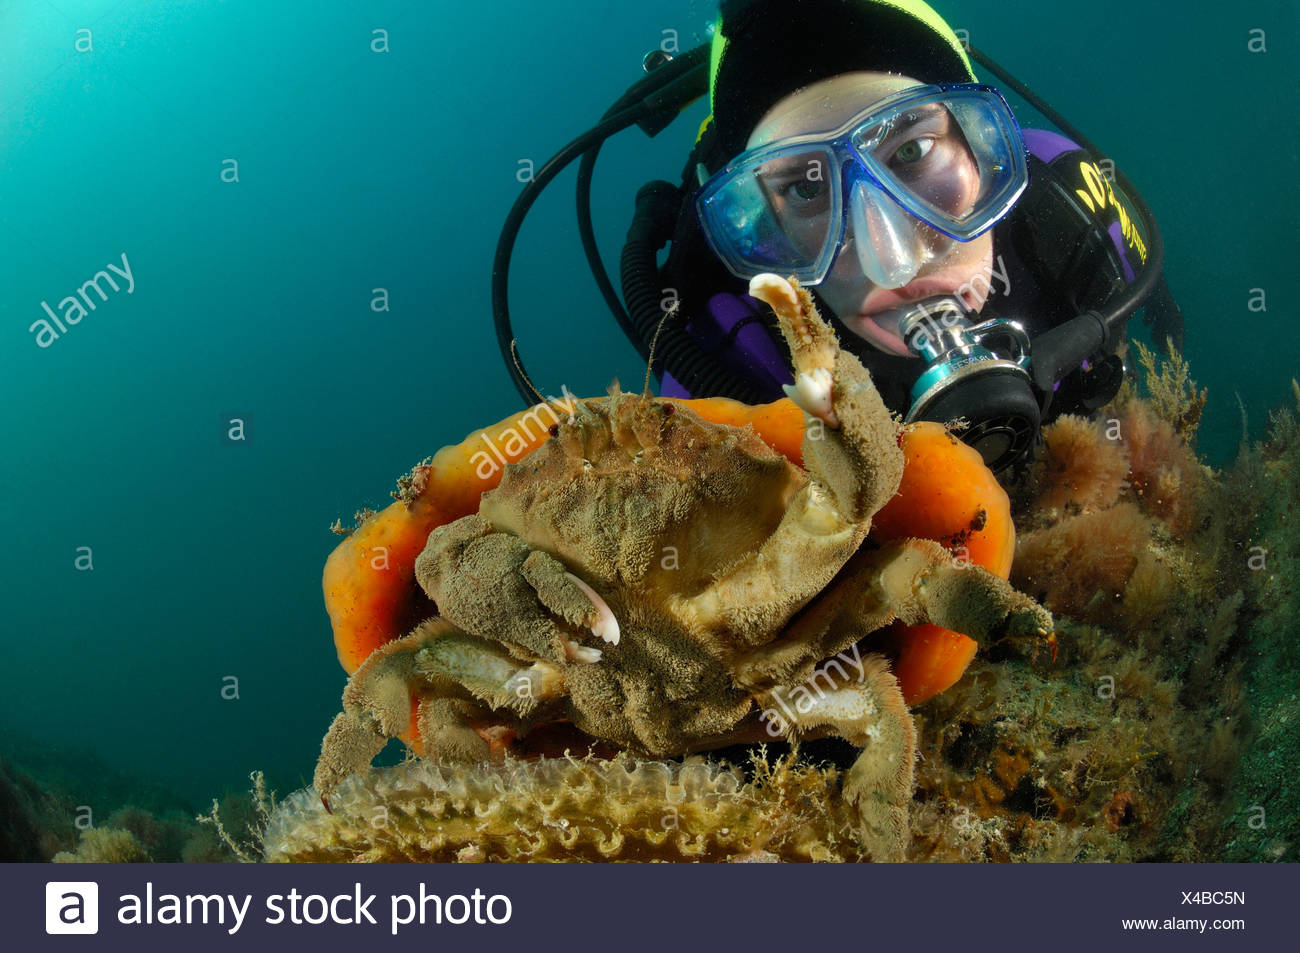 Sponge Crab carry orange Sponge, Dromia personata, Piran, Adriatic Sea, Slovenia - Stock Image